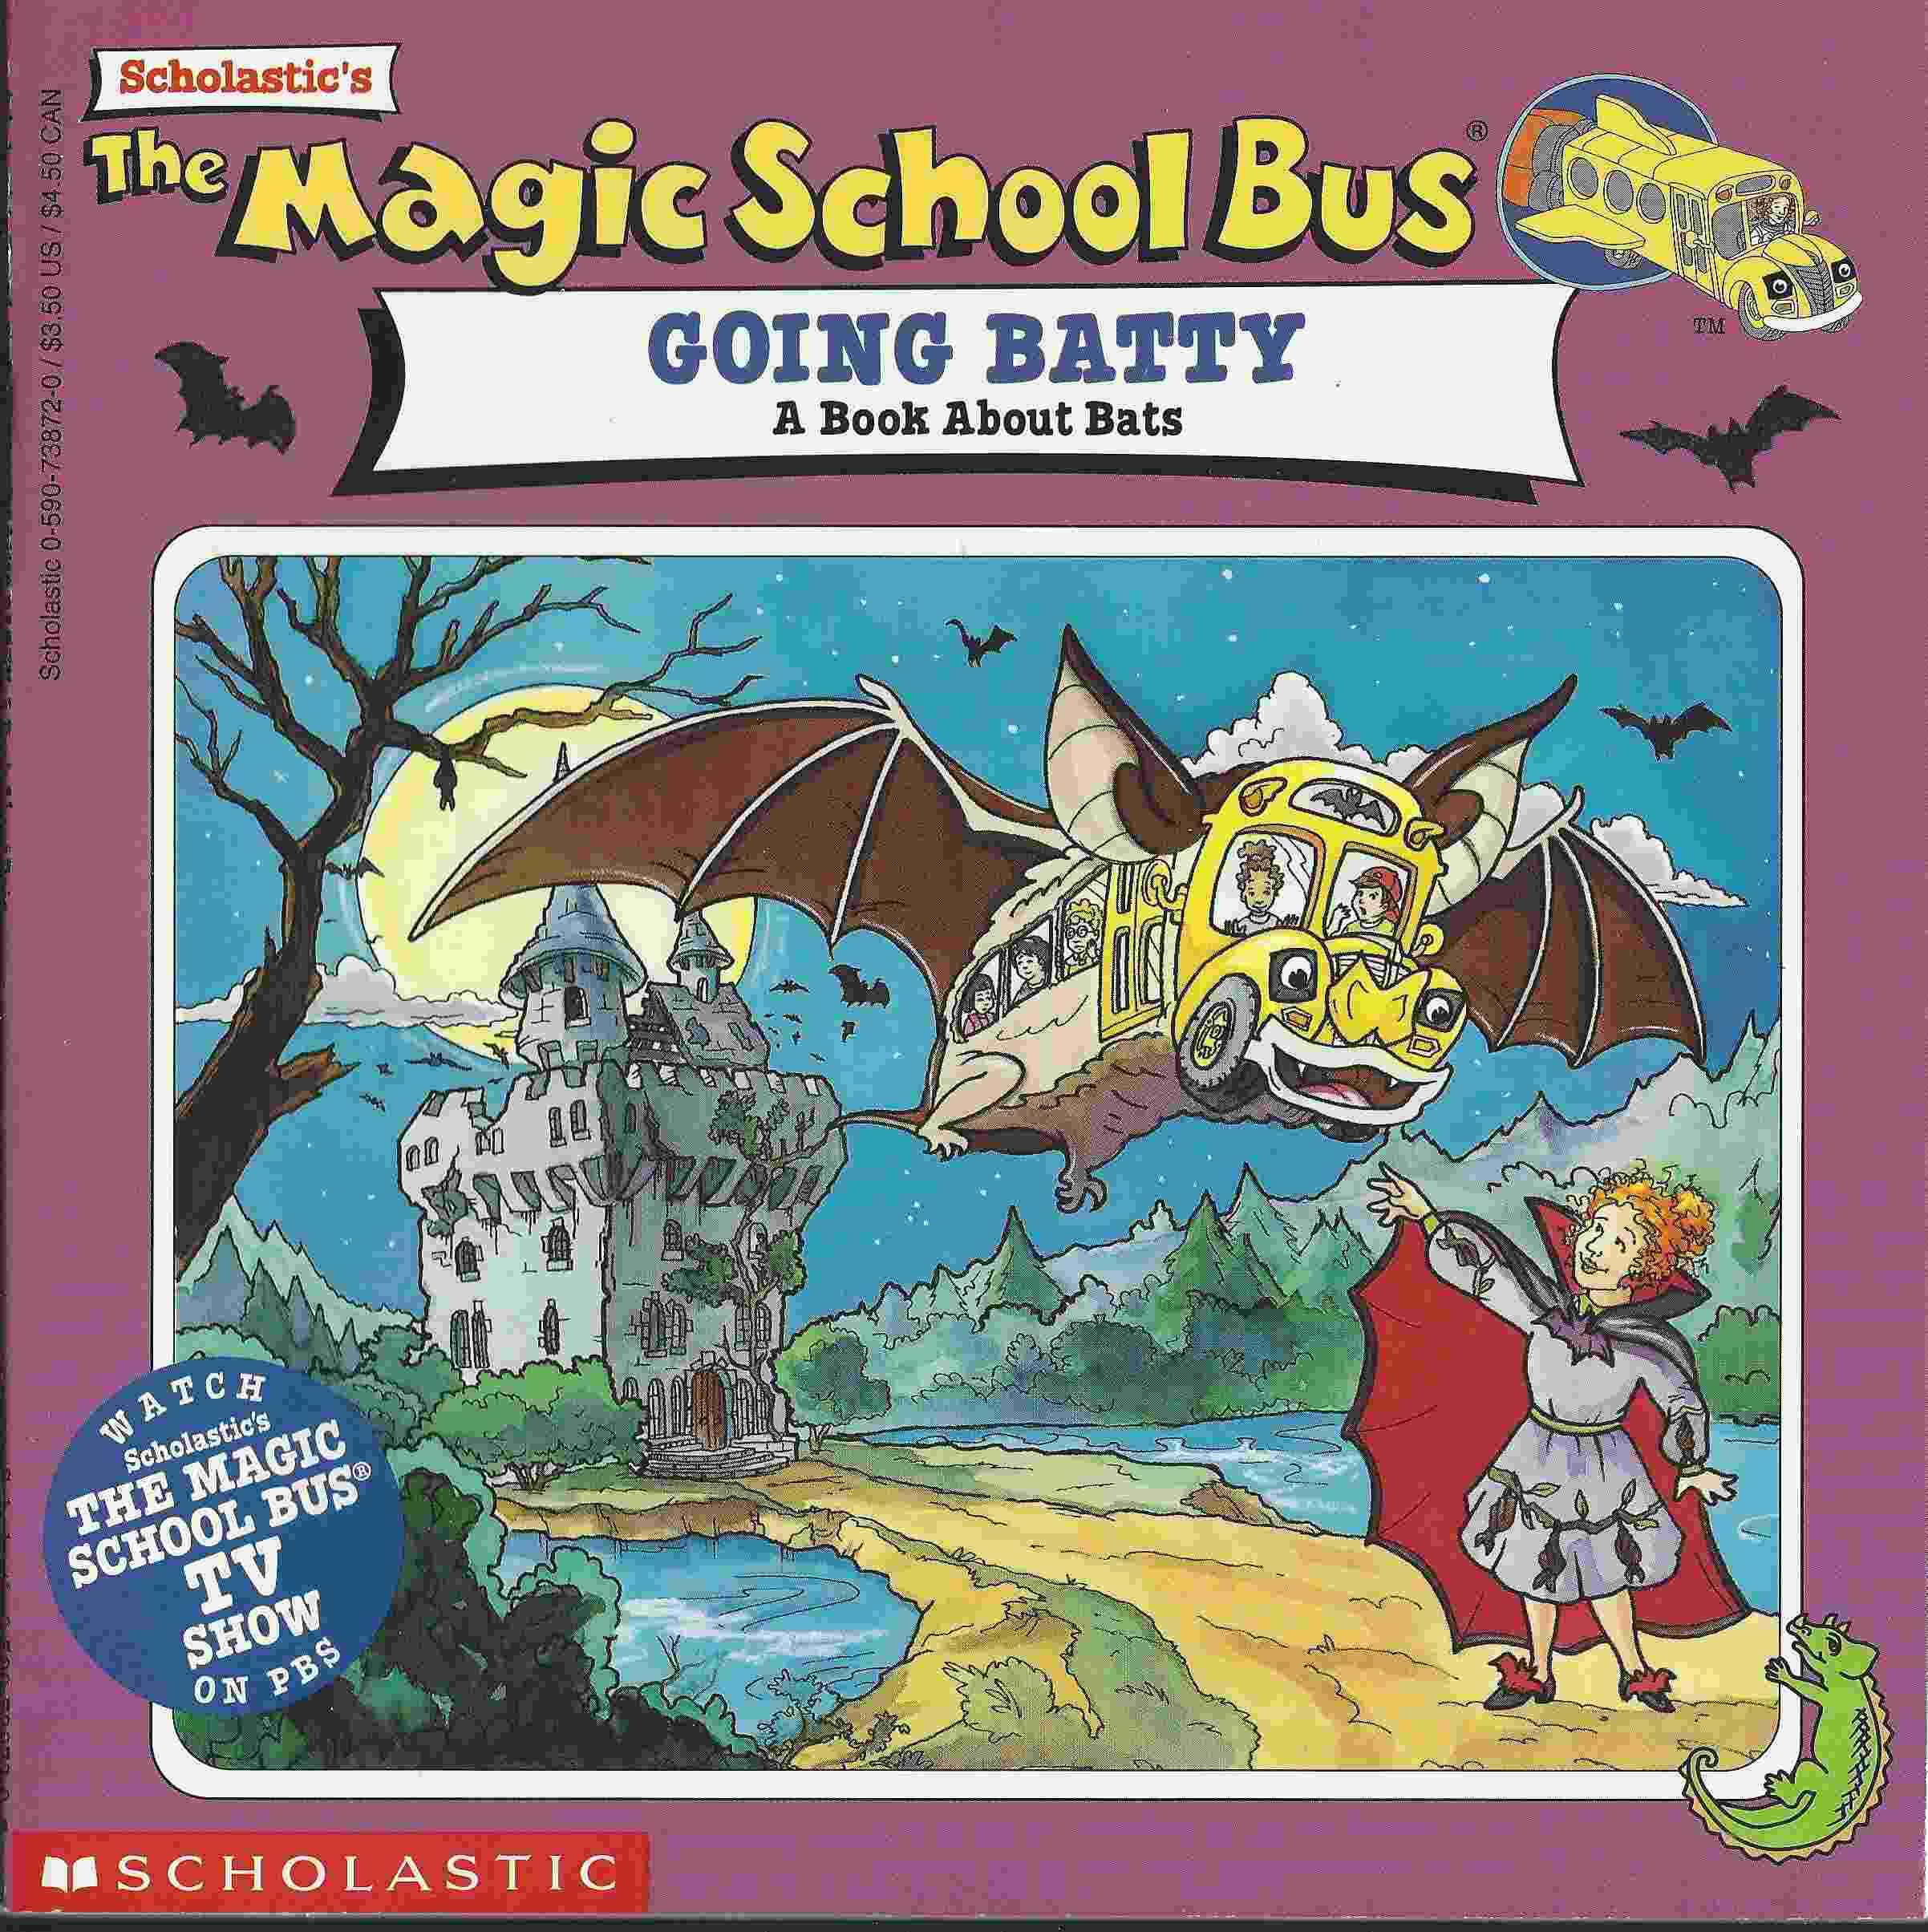 Image for THE MAGIC SCHOOL BUS GOING BATTY A Book about Bats